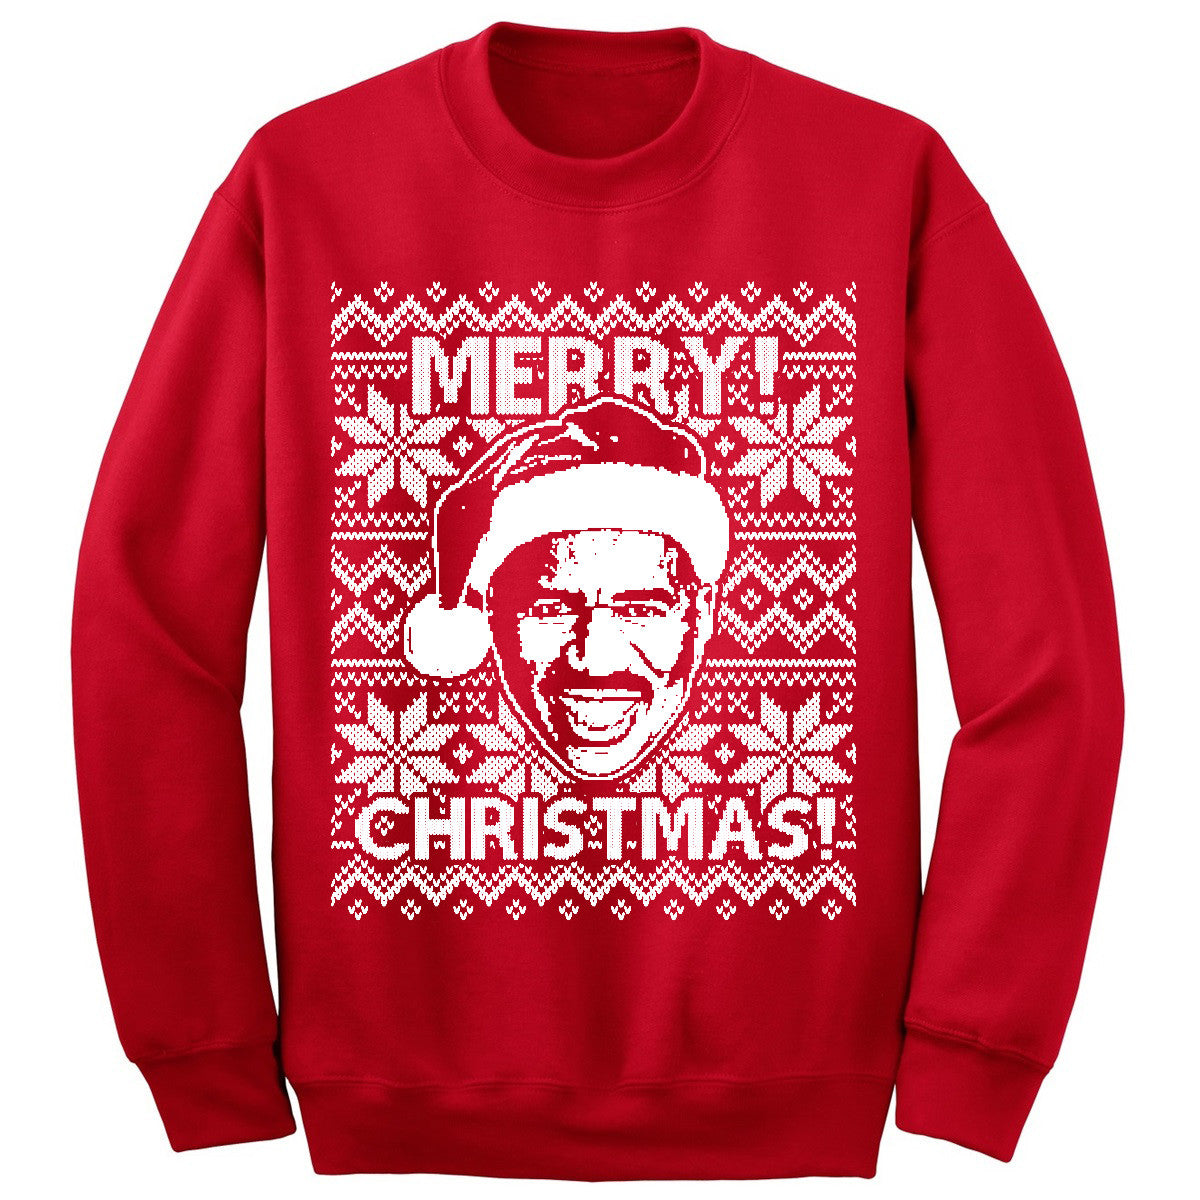 Steve Harvey Merry Christmas Sweatshirt Red